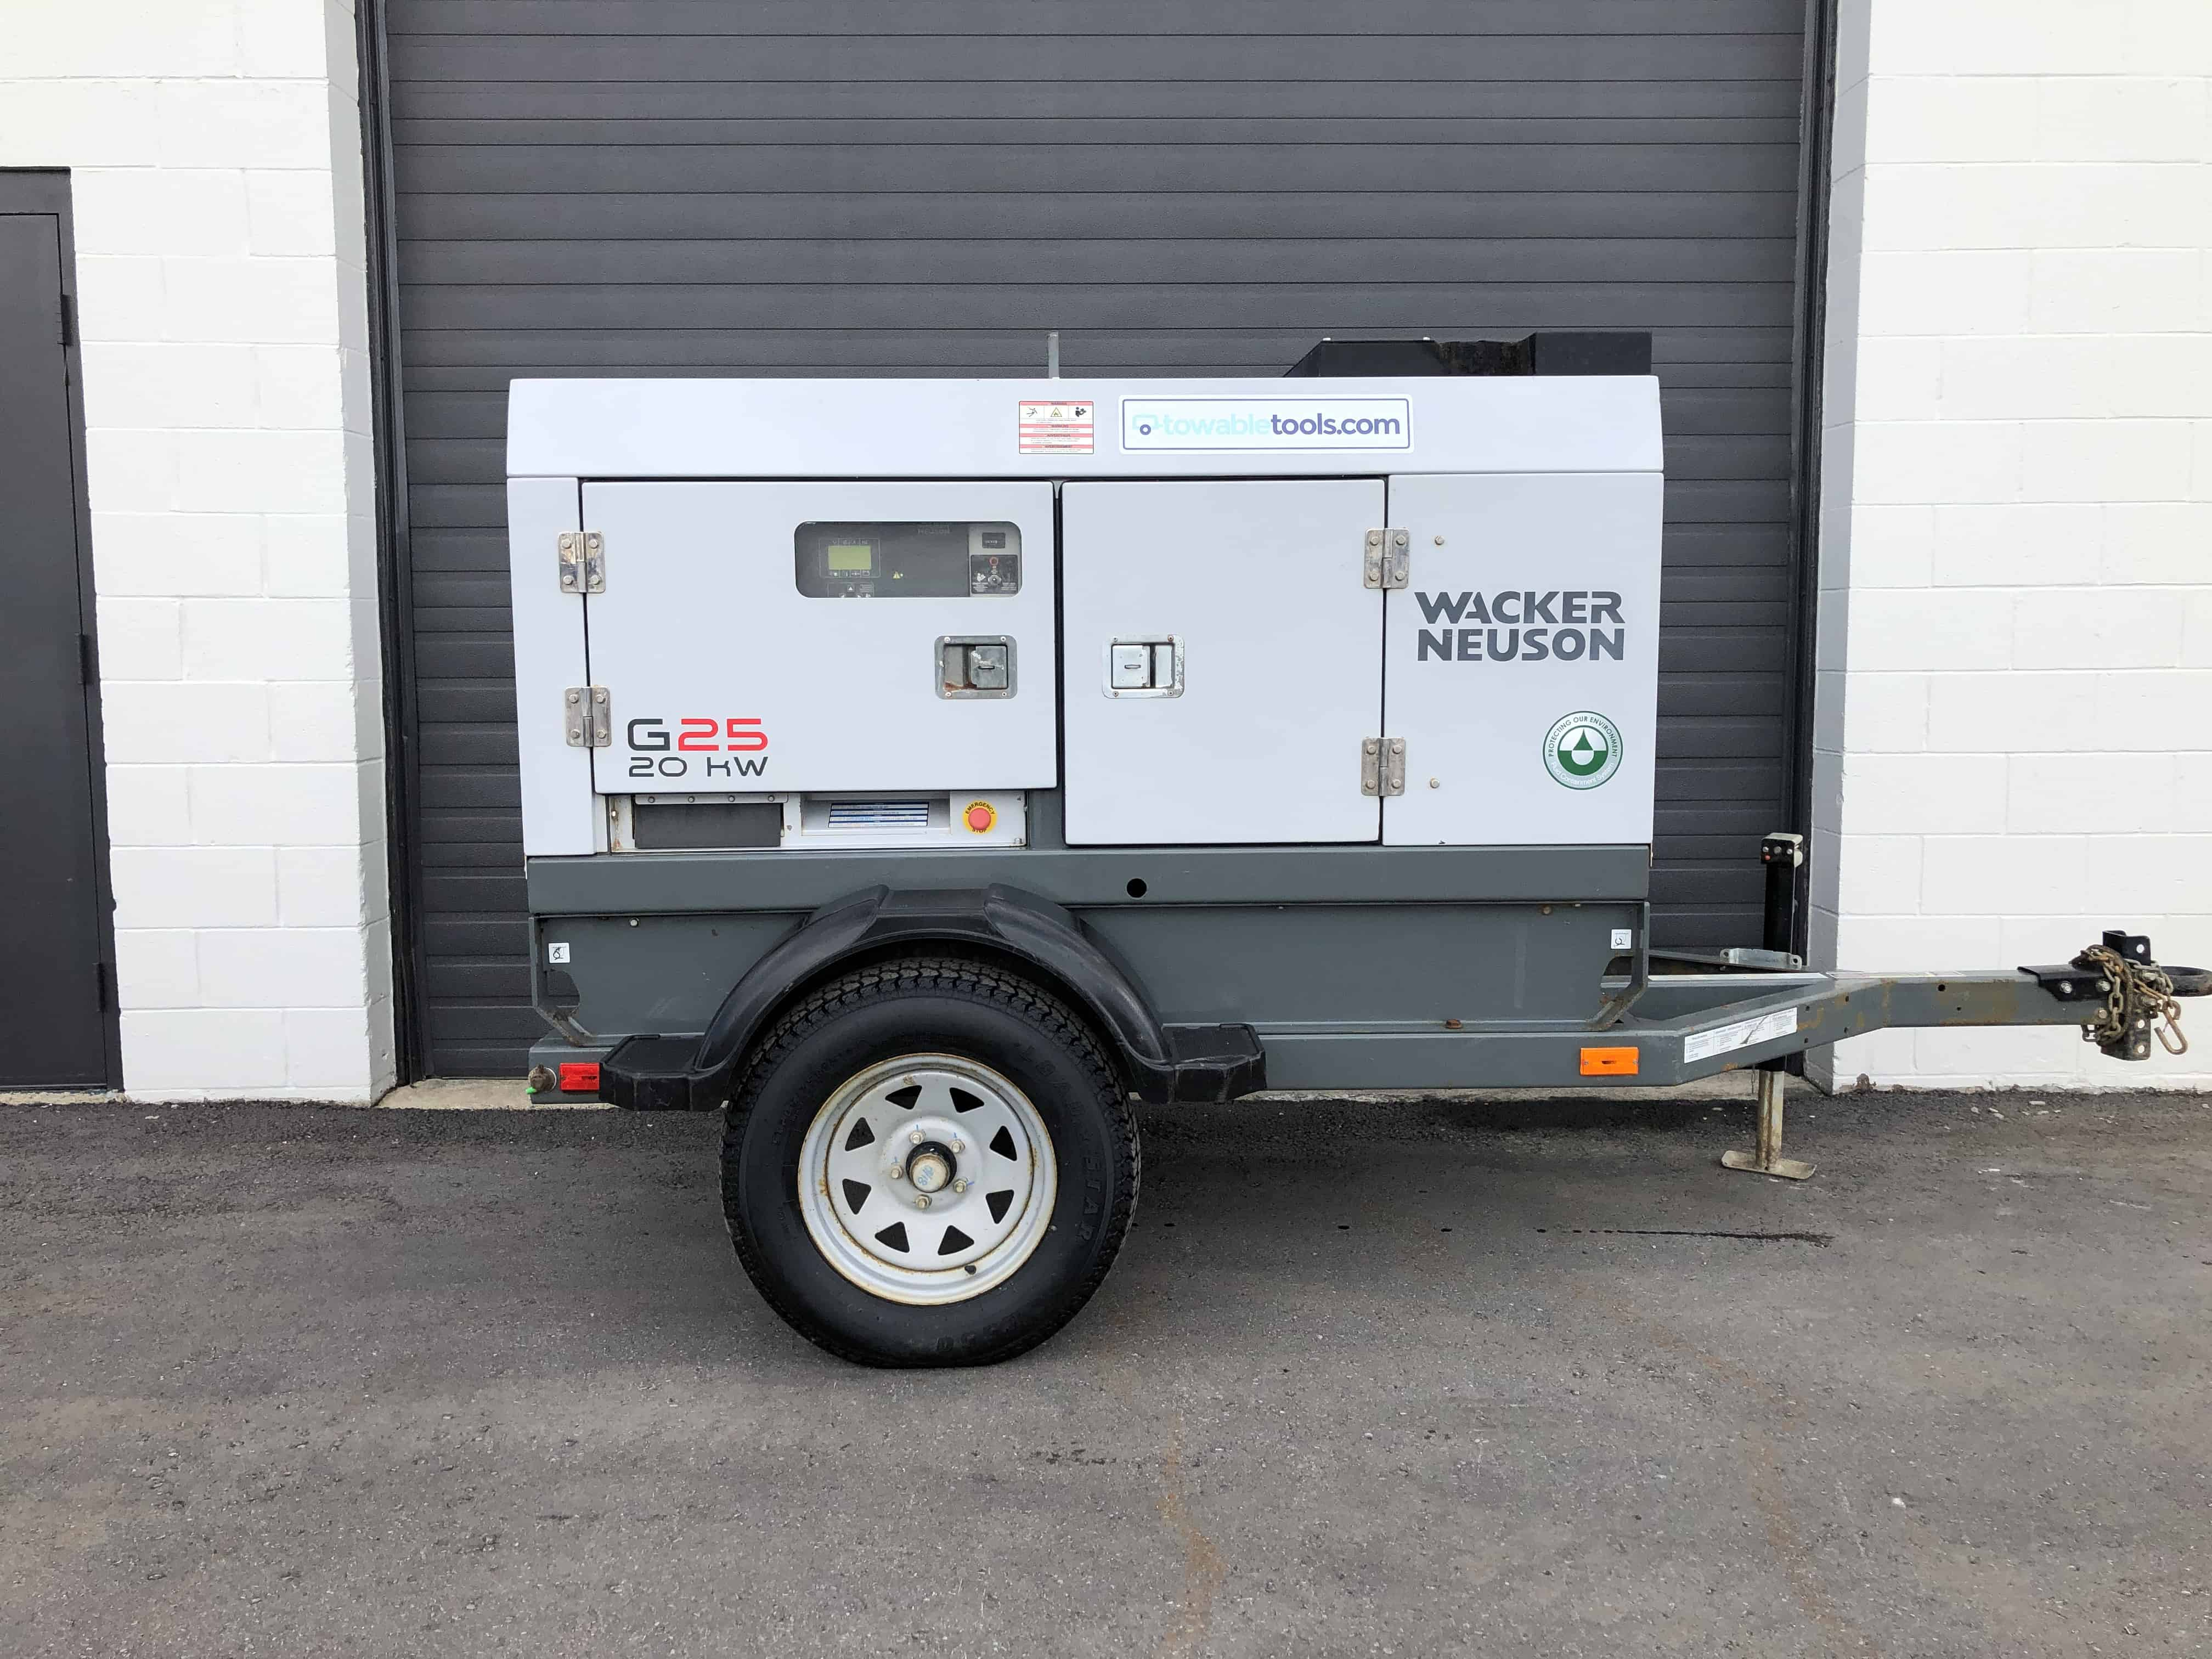 Used Portable Diesel Generator for sale - Wacker Neuson G25 at Towable Tools